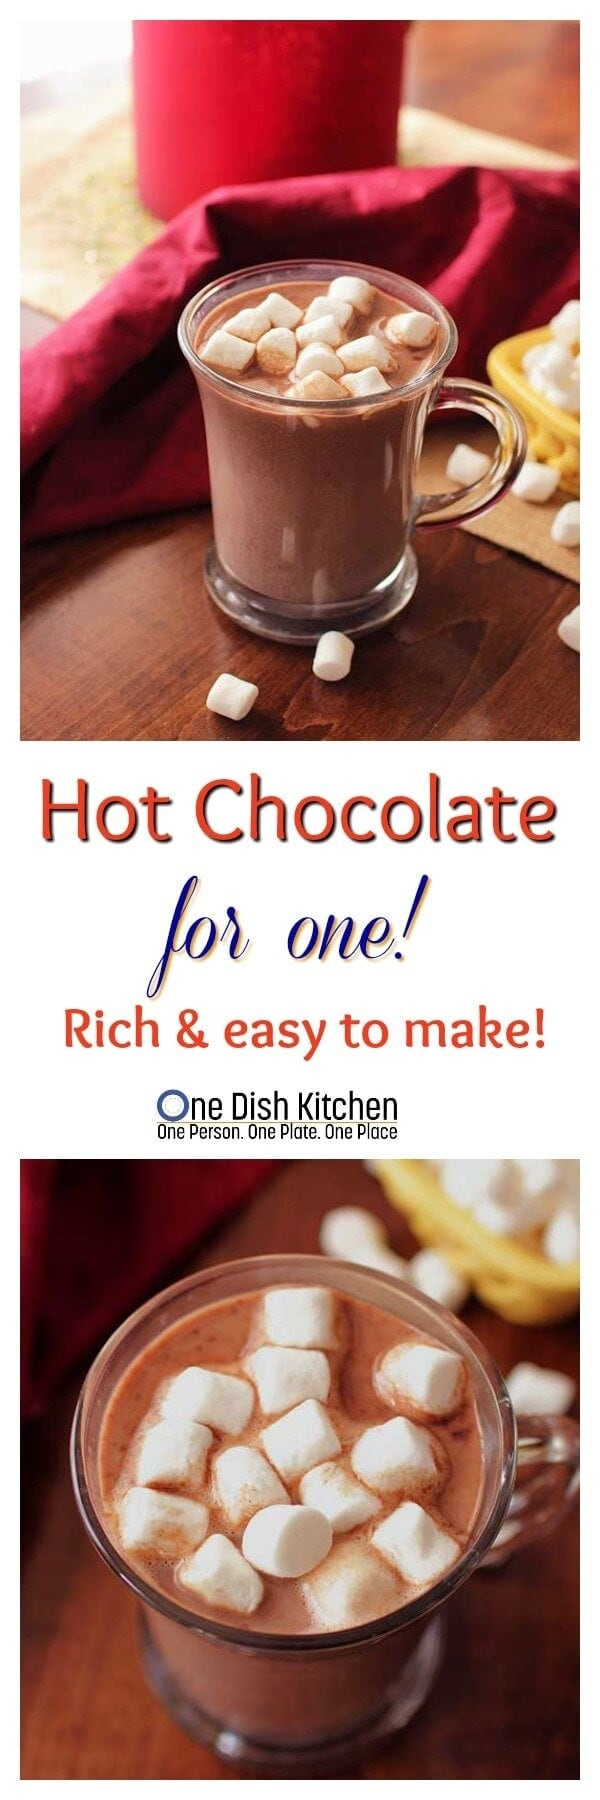 Rich, easy to make homemade hot chocolate for one. A single serving of the richest, most delicious hot chocolate. Made with milk, cocoa powder and sugar. | One Dish Kitchen